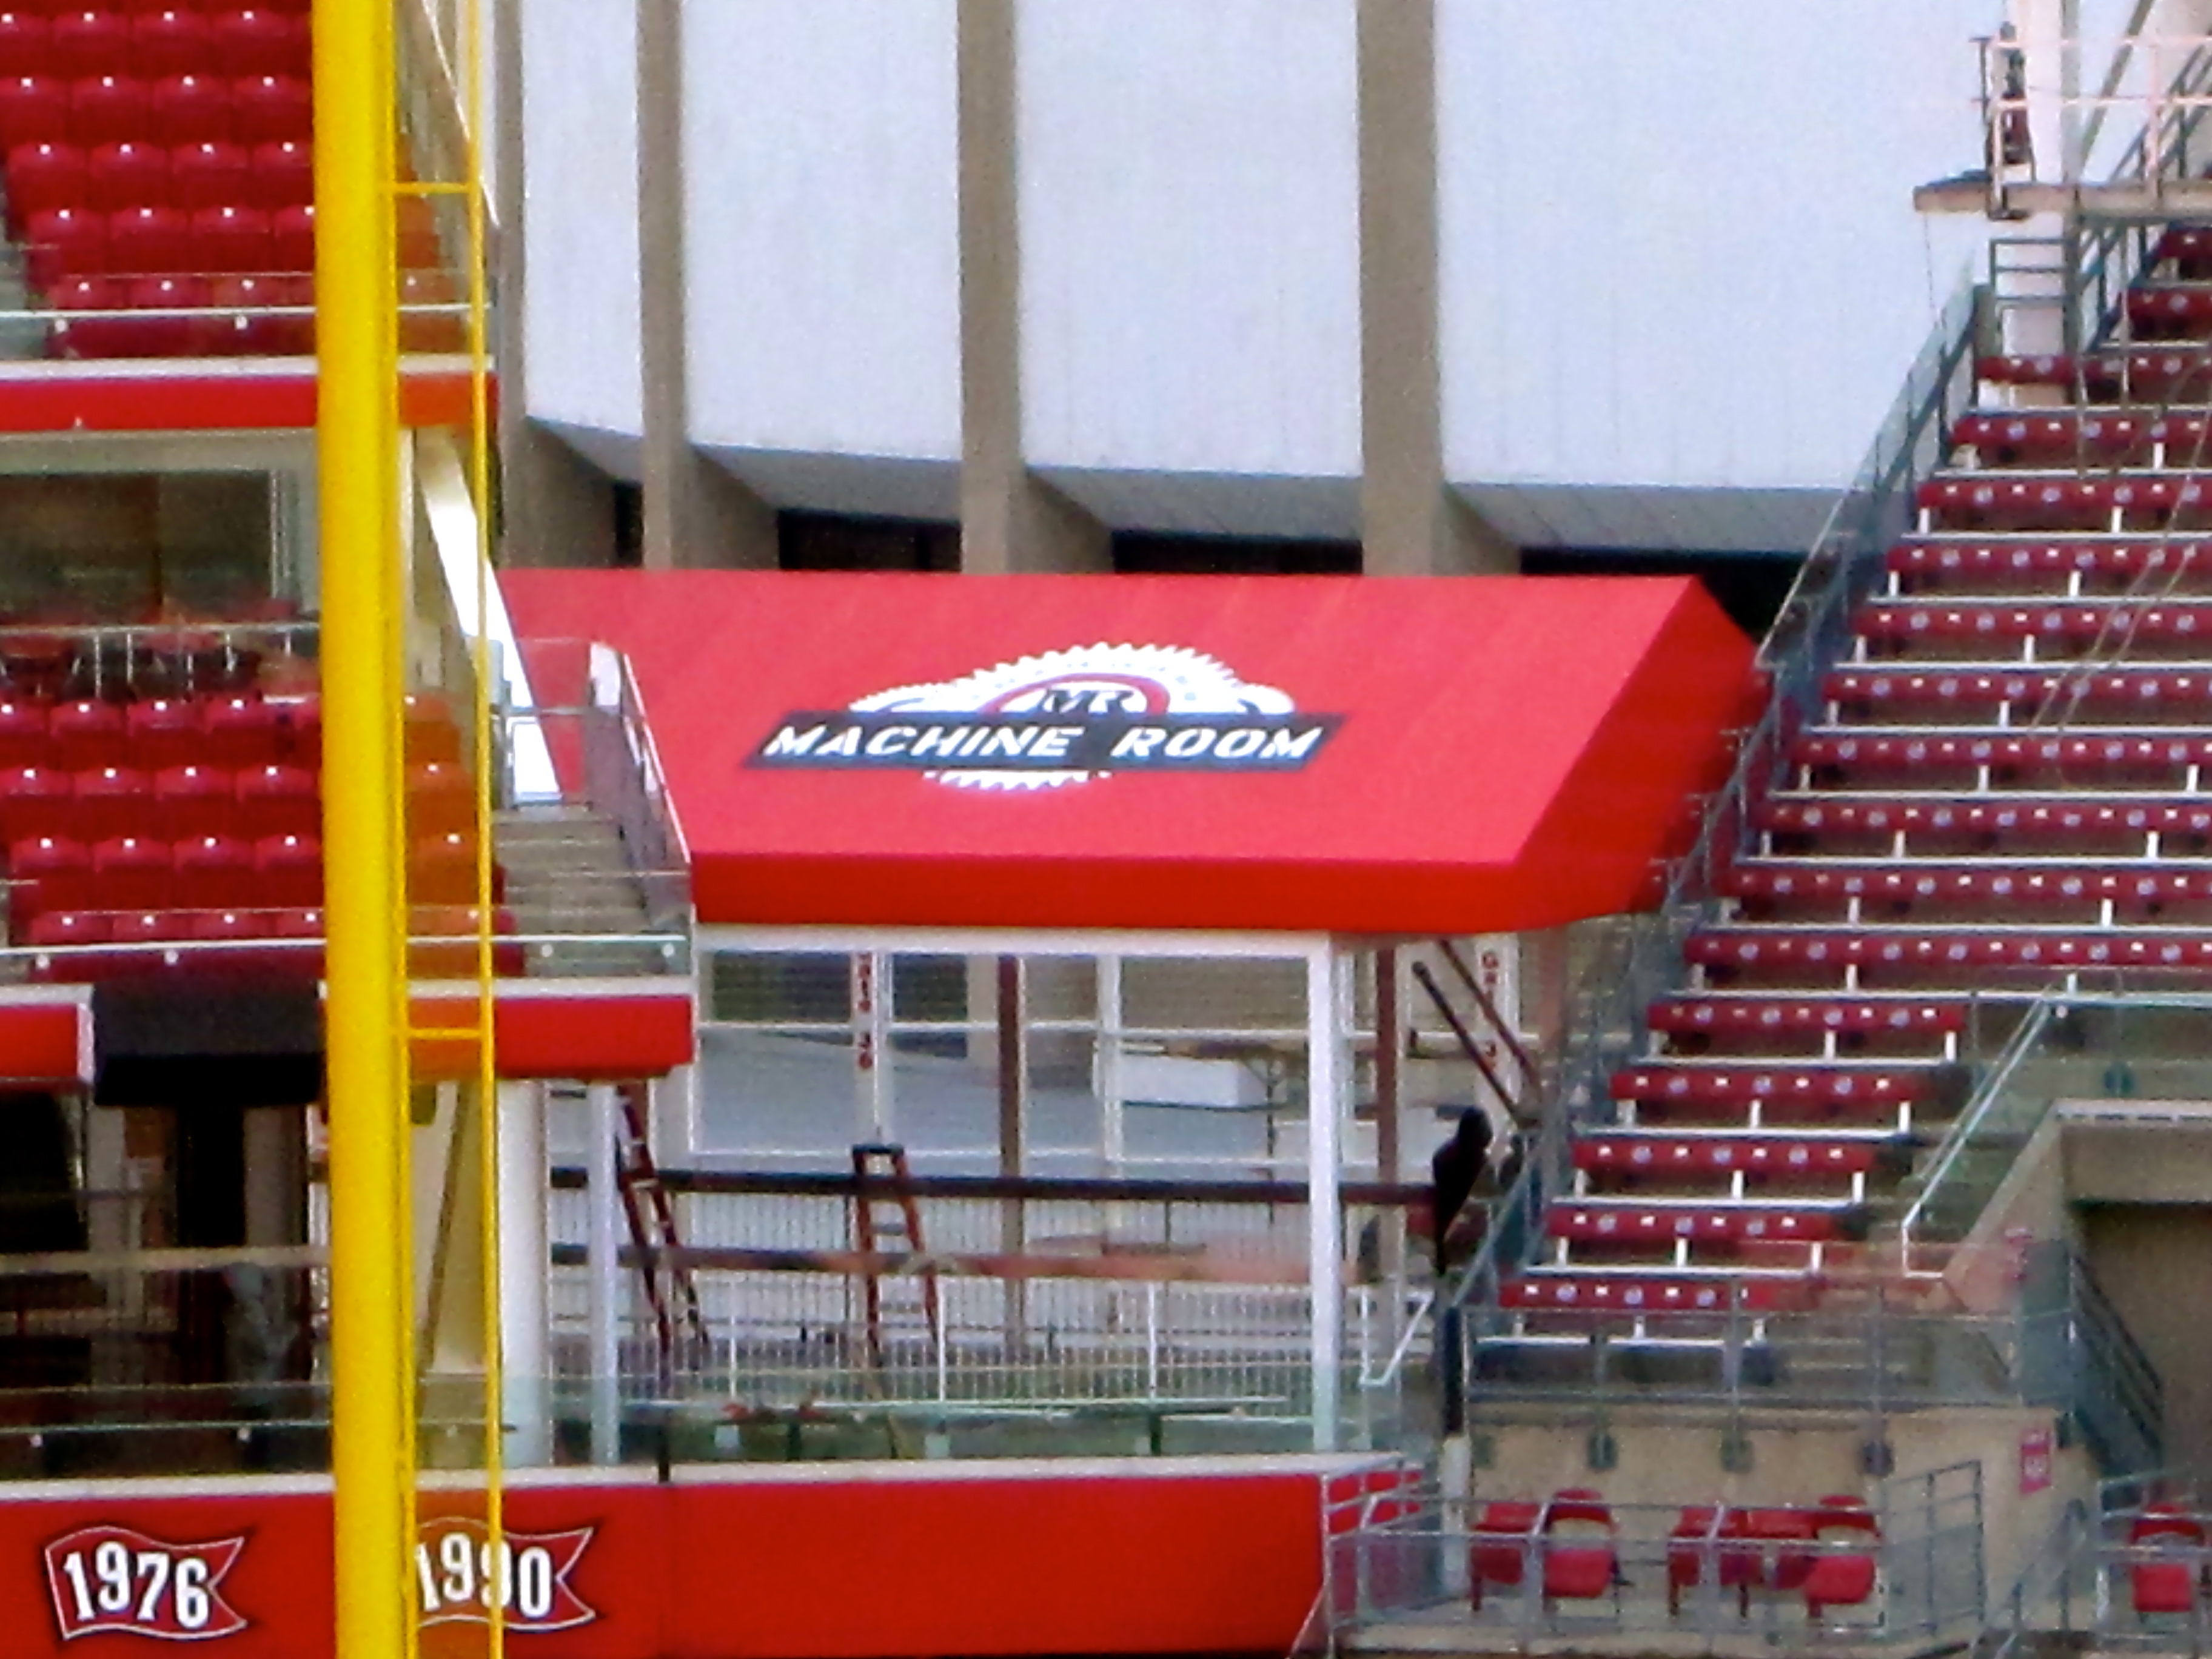 Cincinnati Reds Machine Room Canopy by Queen City Awning ...